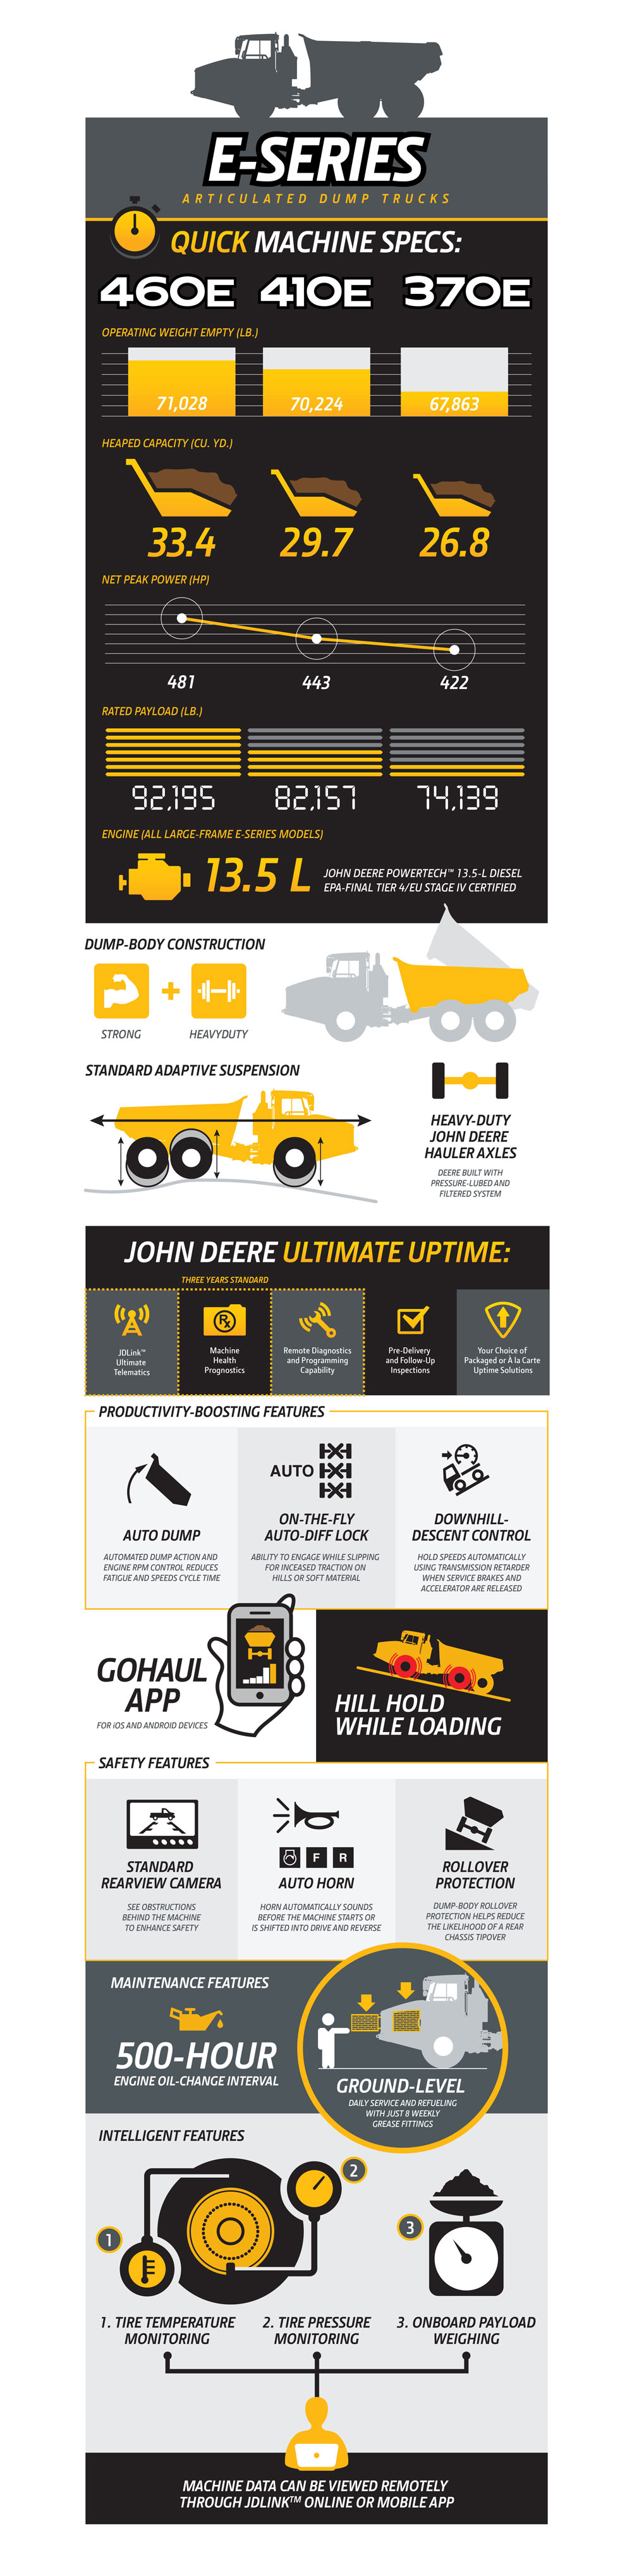 E-Series Articulated Dump Truck Infographic